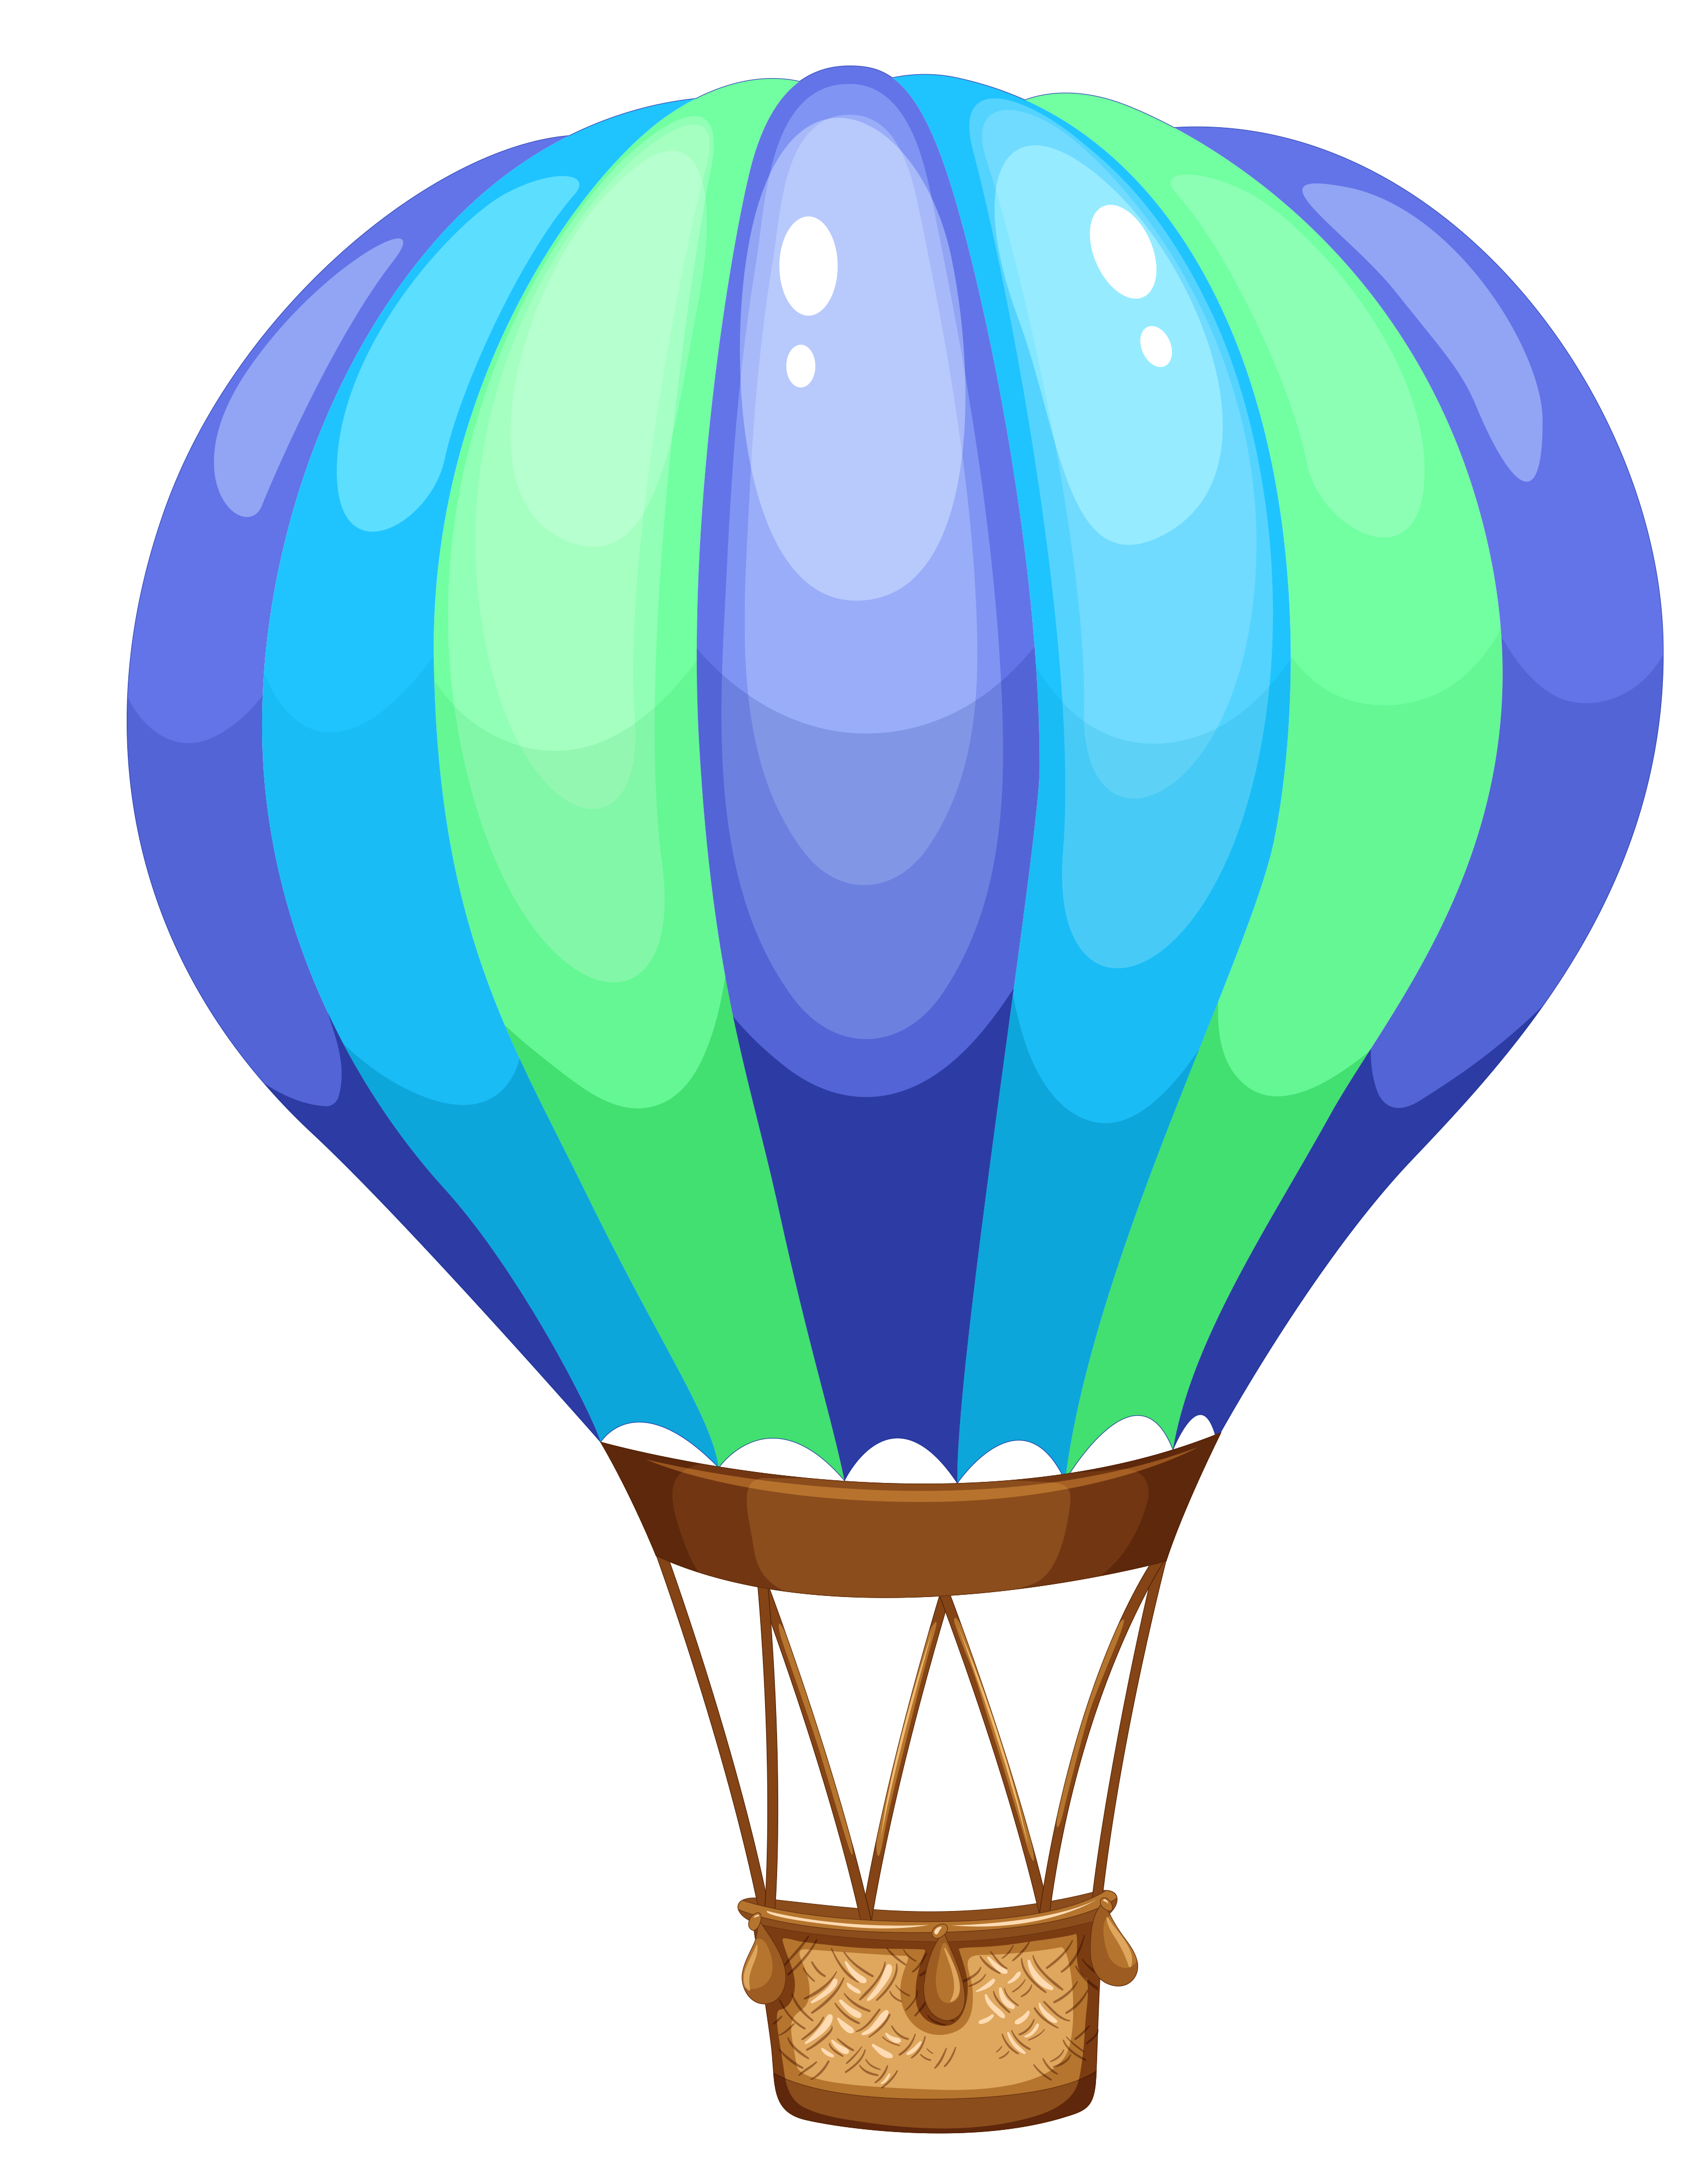 Hot air balloon images clipart image library download Pin by Unloveable tum*✿* on Balloons ลูกโป่ง   Balloon door ... image library download